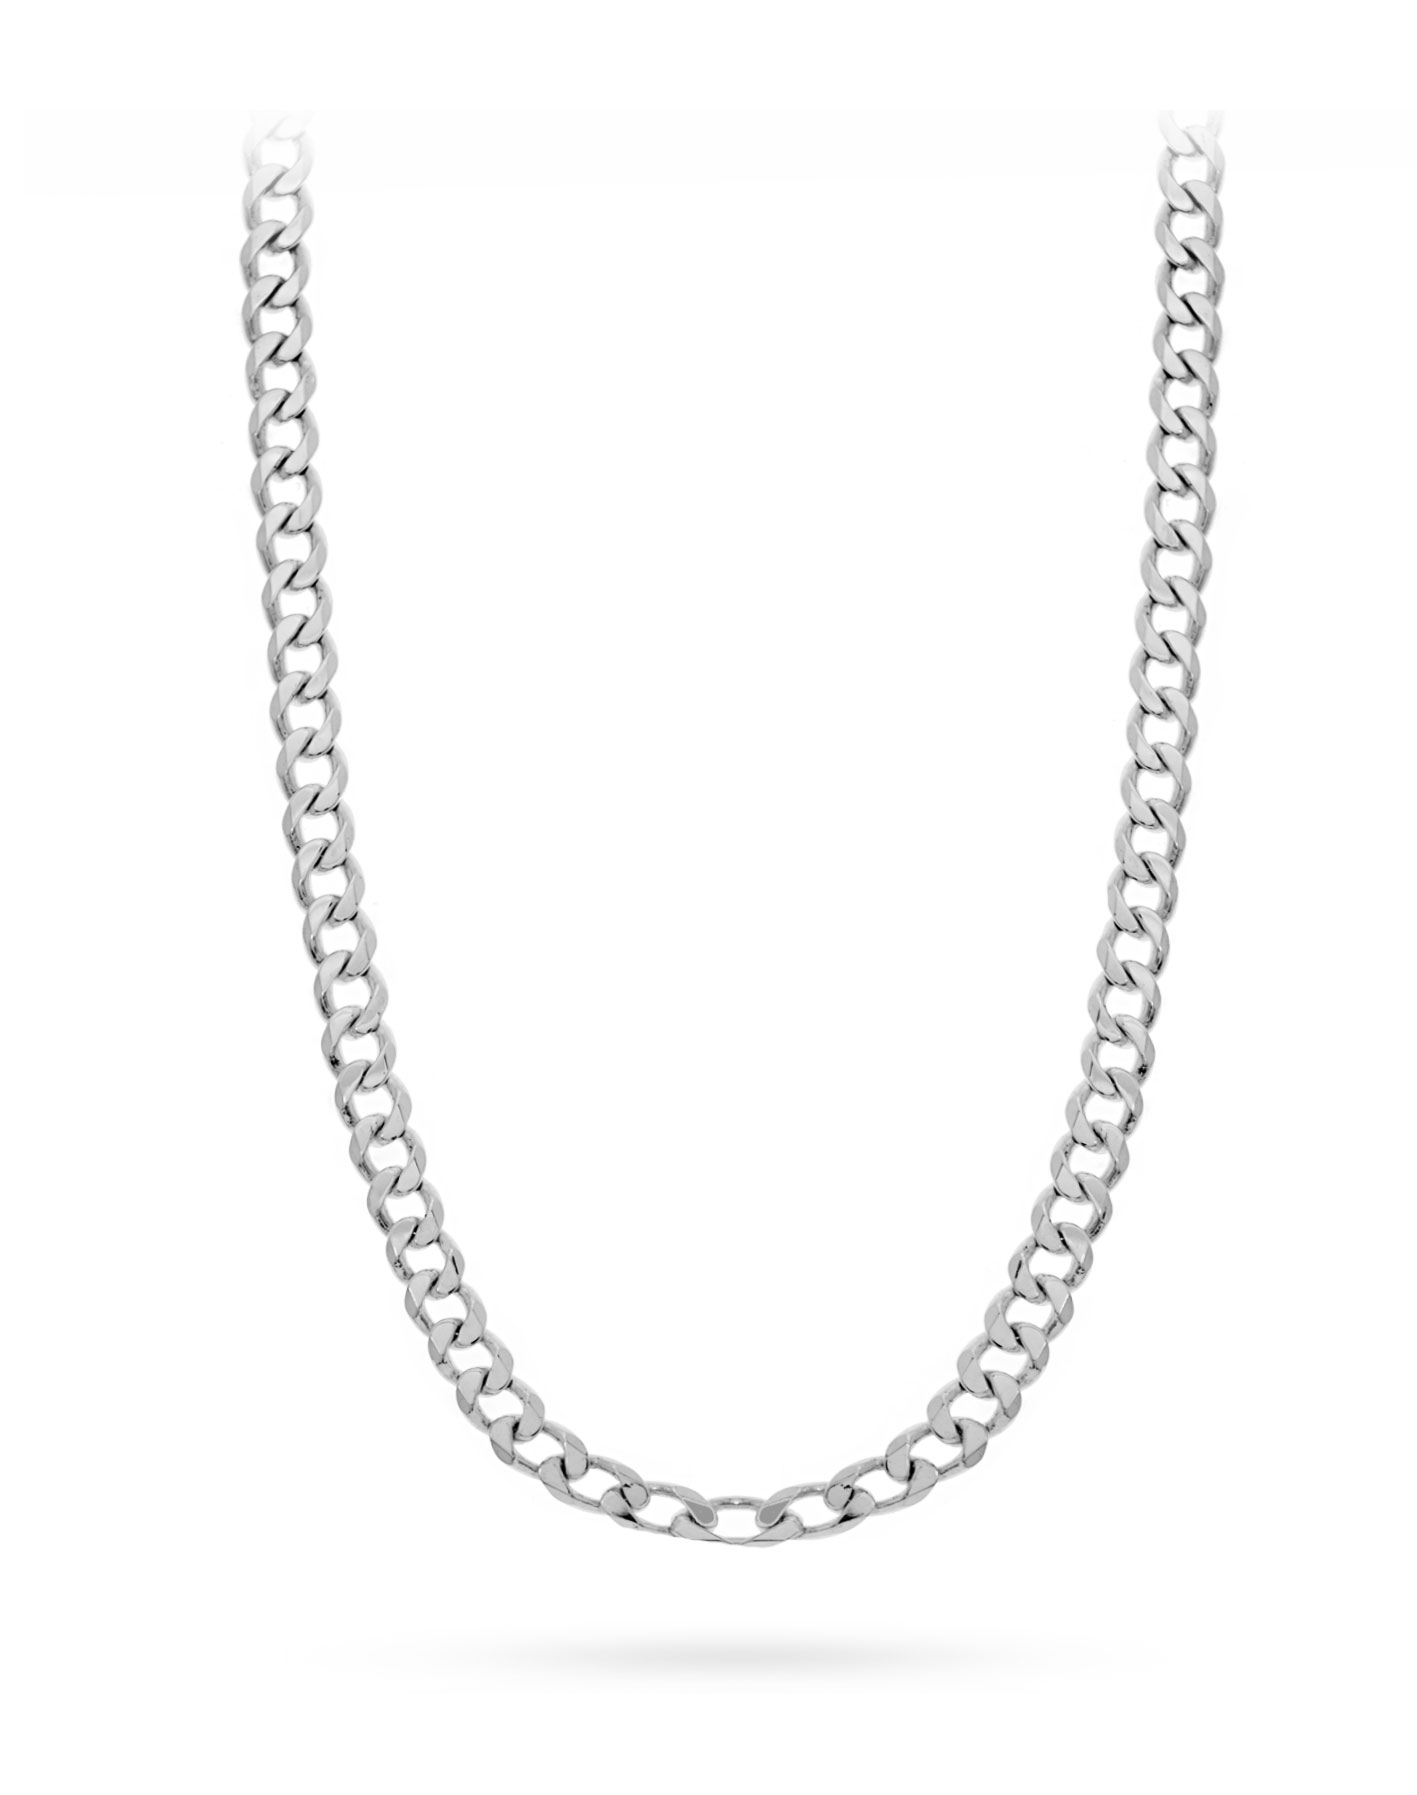 cubanlink-large-inplated-silver-chains